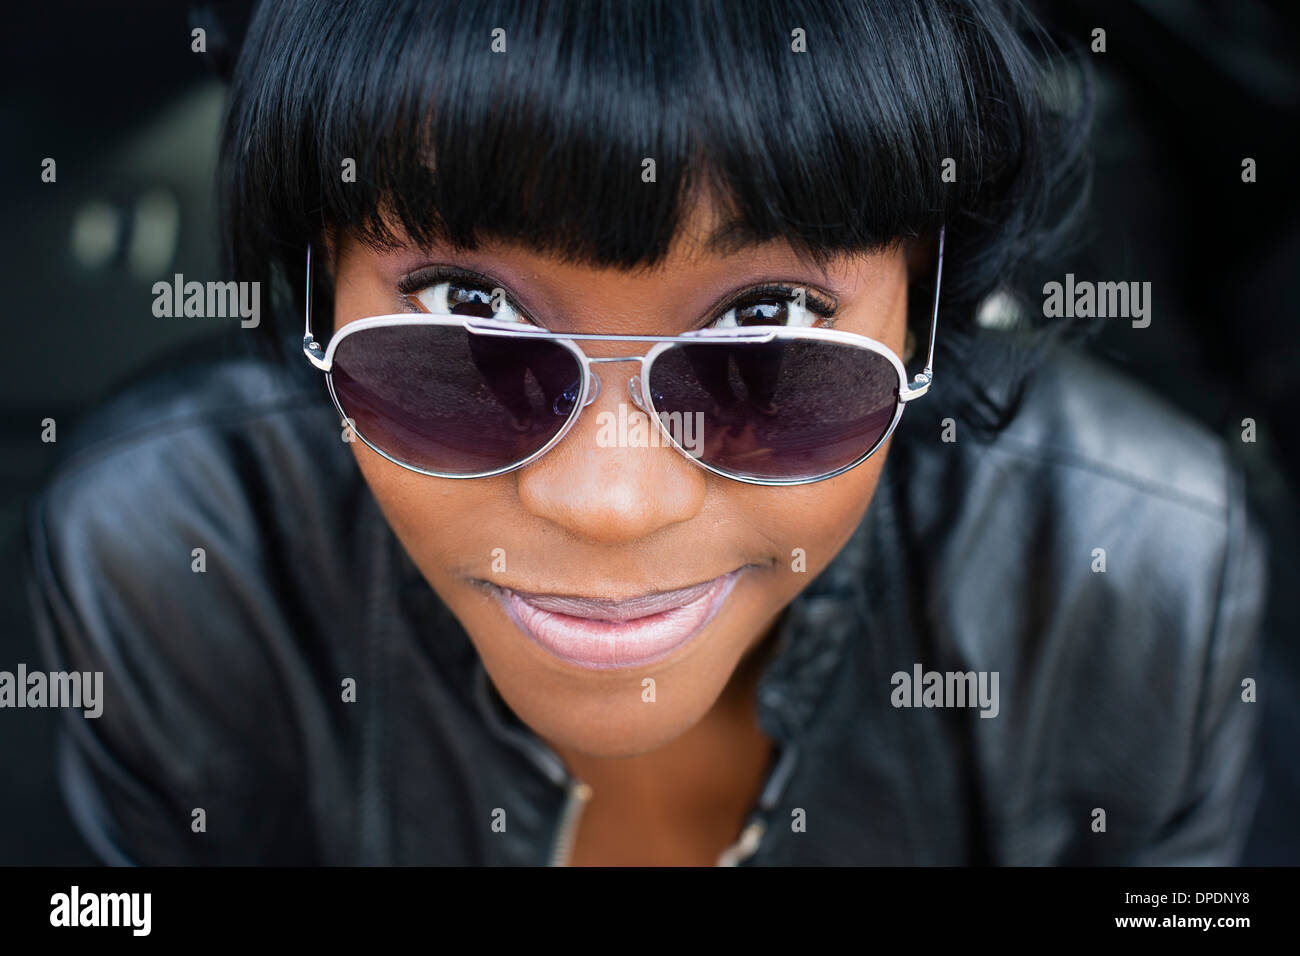 Close up portrait of young woman in sunglasses Stock Photo